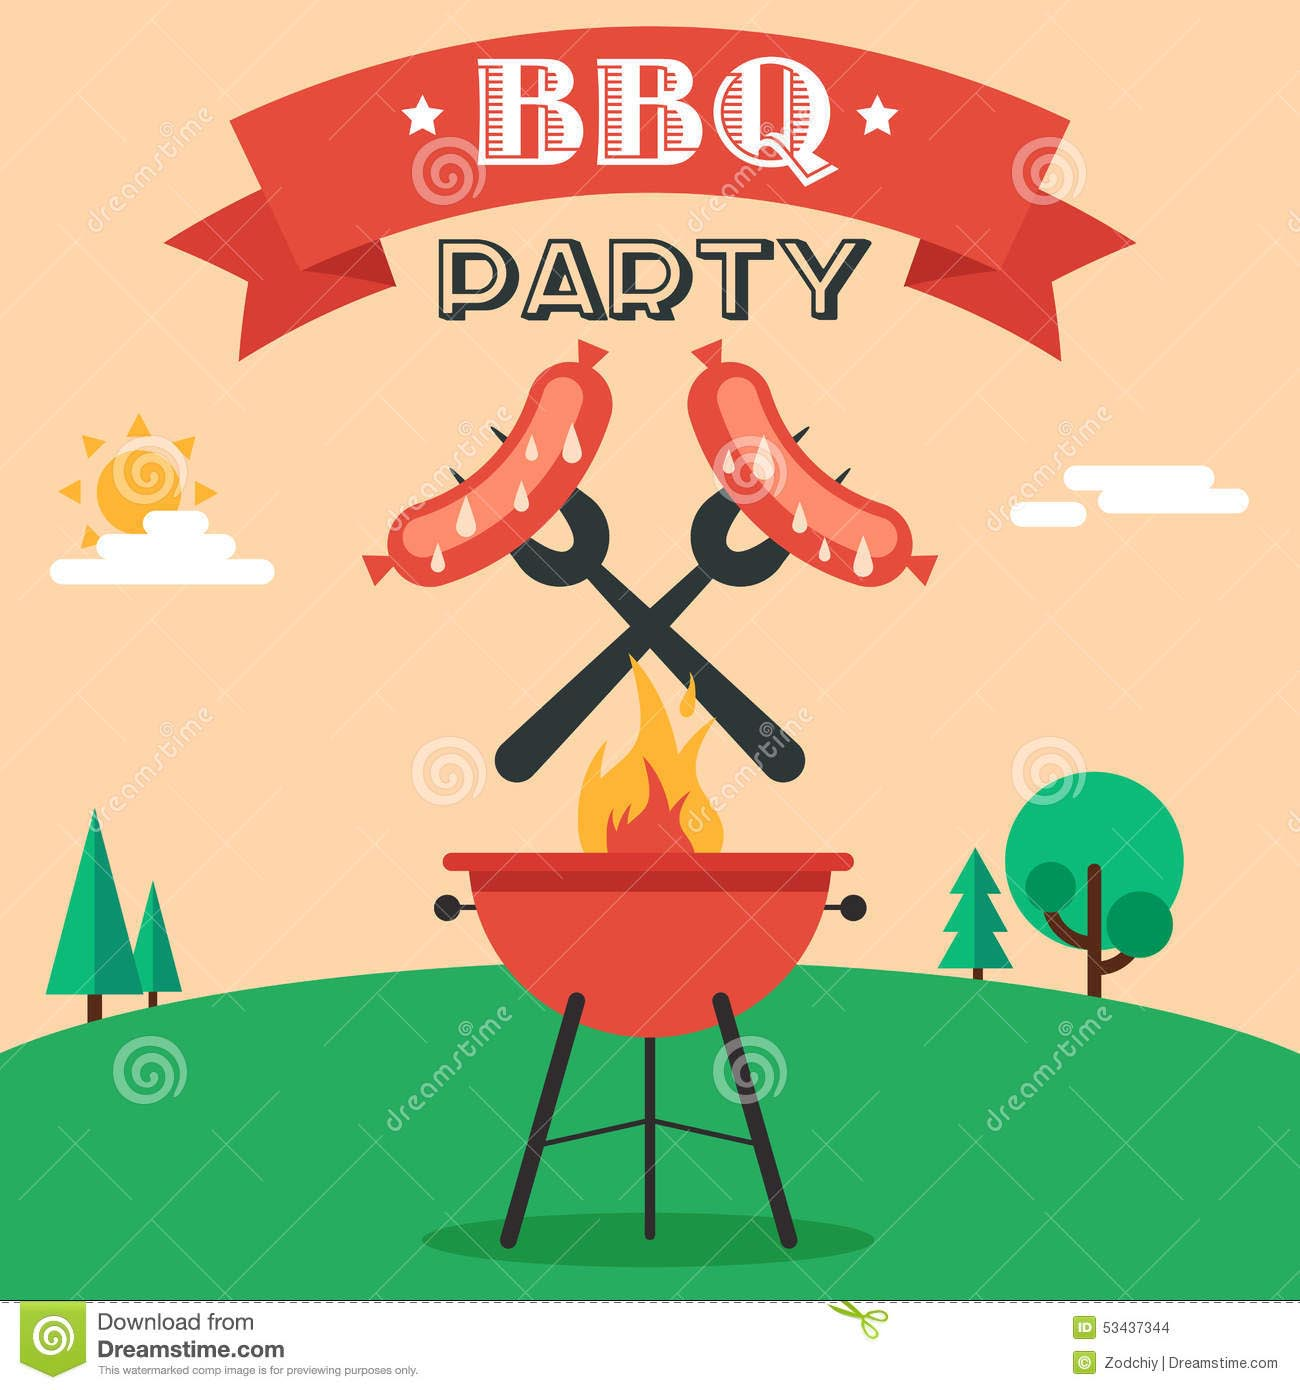 bbq party invitation templates free fire pit design ideas. Black Bedroom Furniture Sets. Home Design Ideas